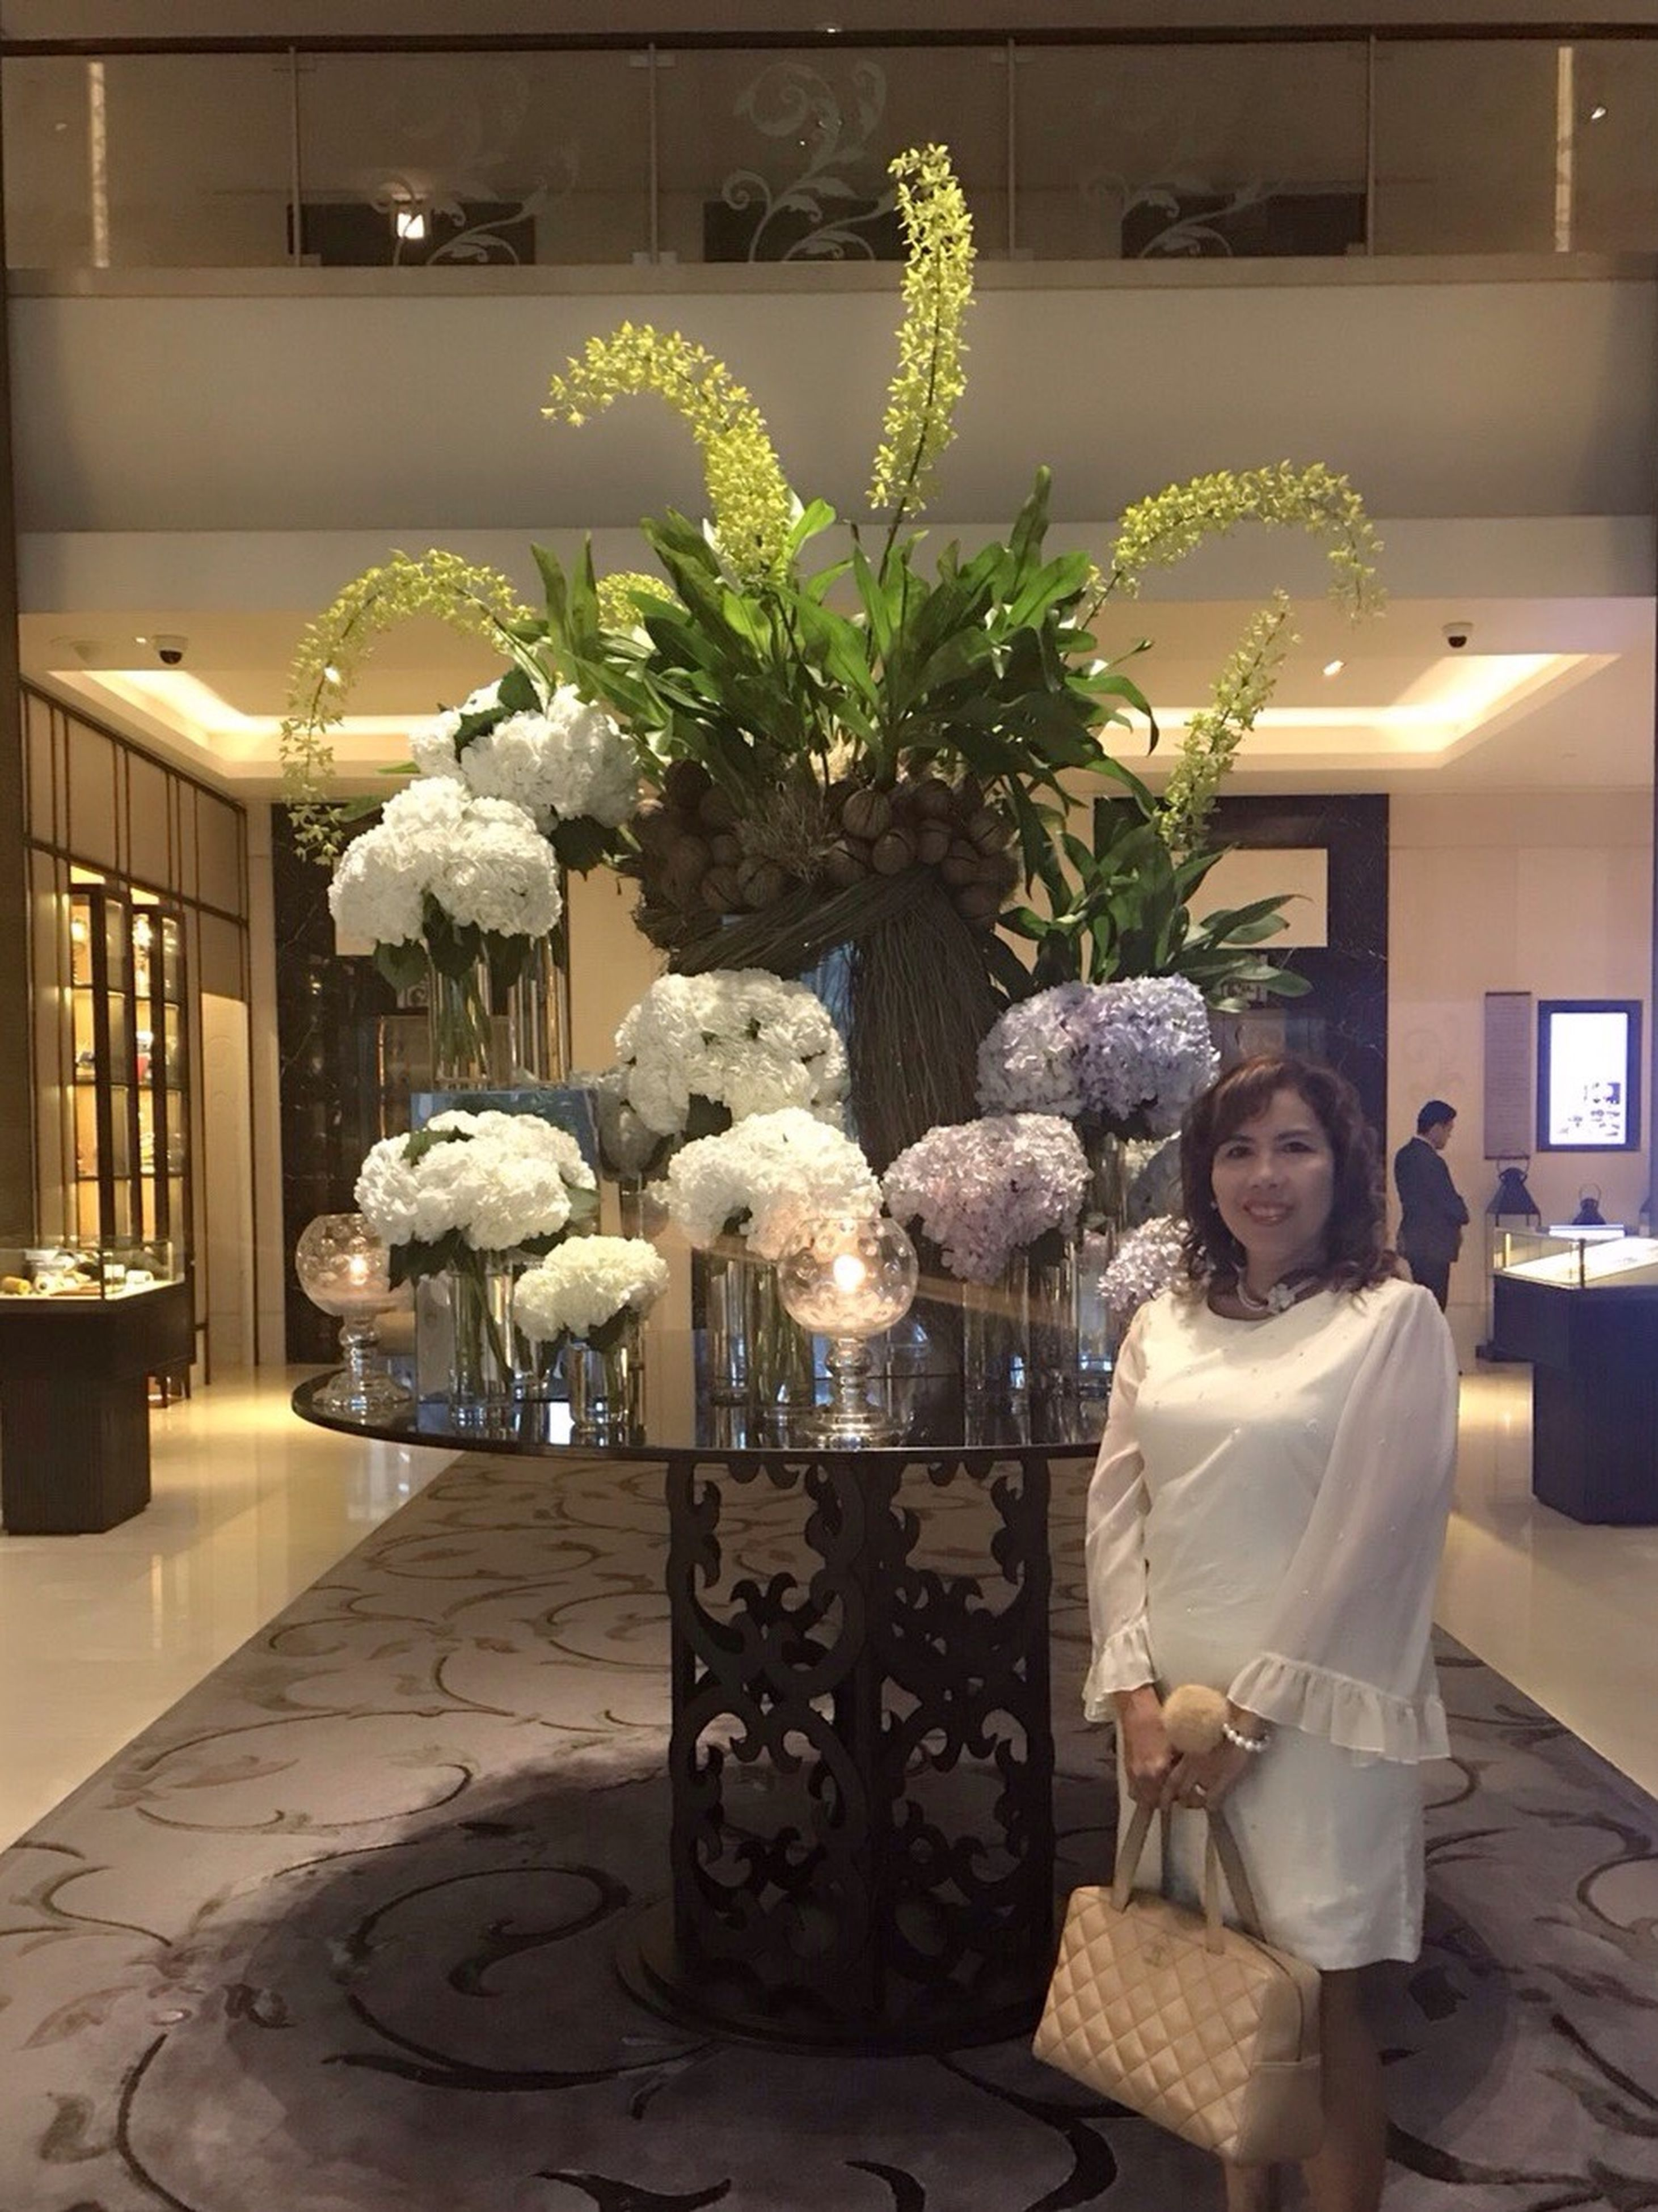 indoors, real people, flower, one person, home interior, looking at camera, luxury, standing, women, lifestyles, home showcase interior, young women, portrait, bouquet, young adult, night, illuminated, architecture, tree, people